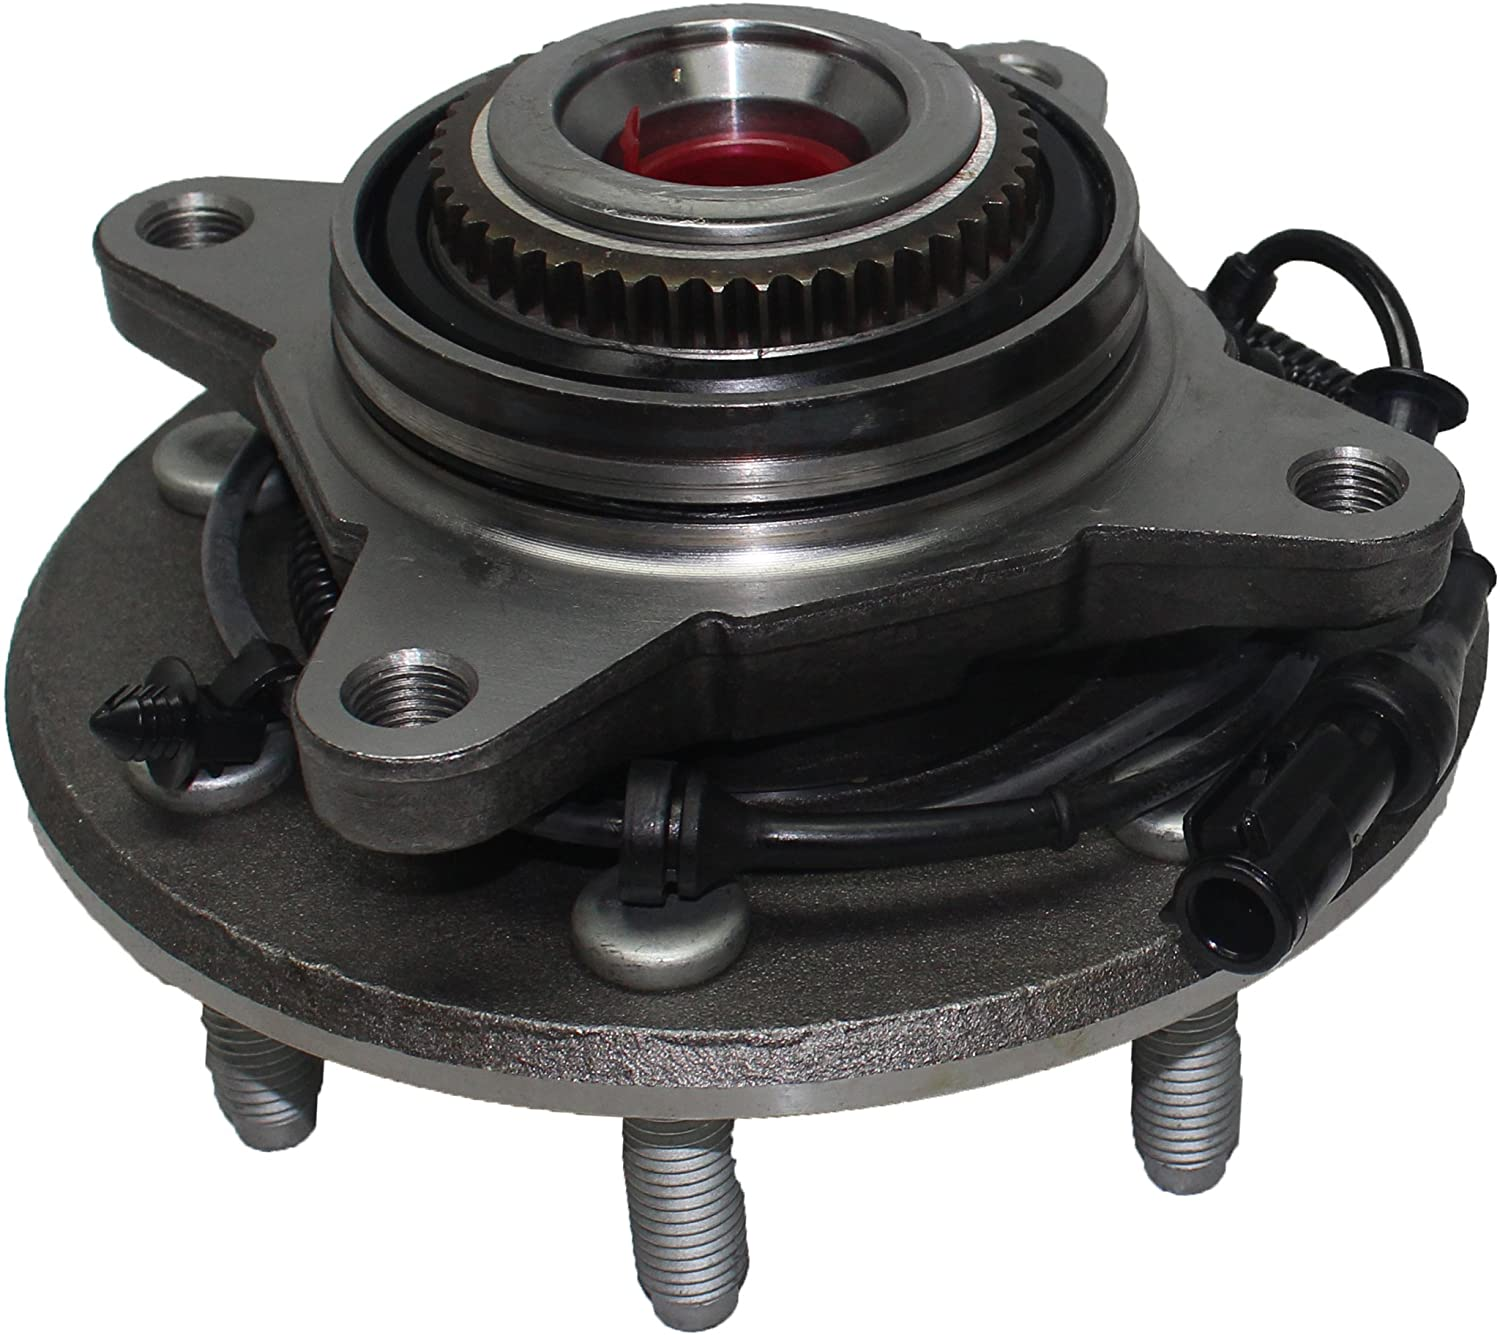 Detroit Axle - Front Wheel Hub and Bearing Assembly Replacement for 2004-05 F-150 4x4 7 Lug W/ABS